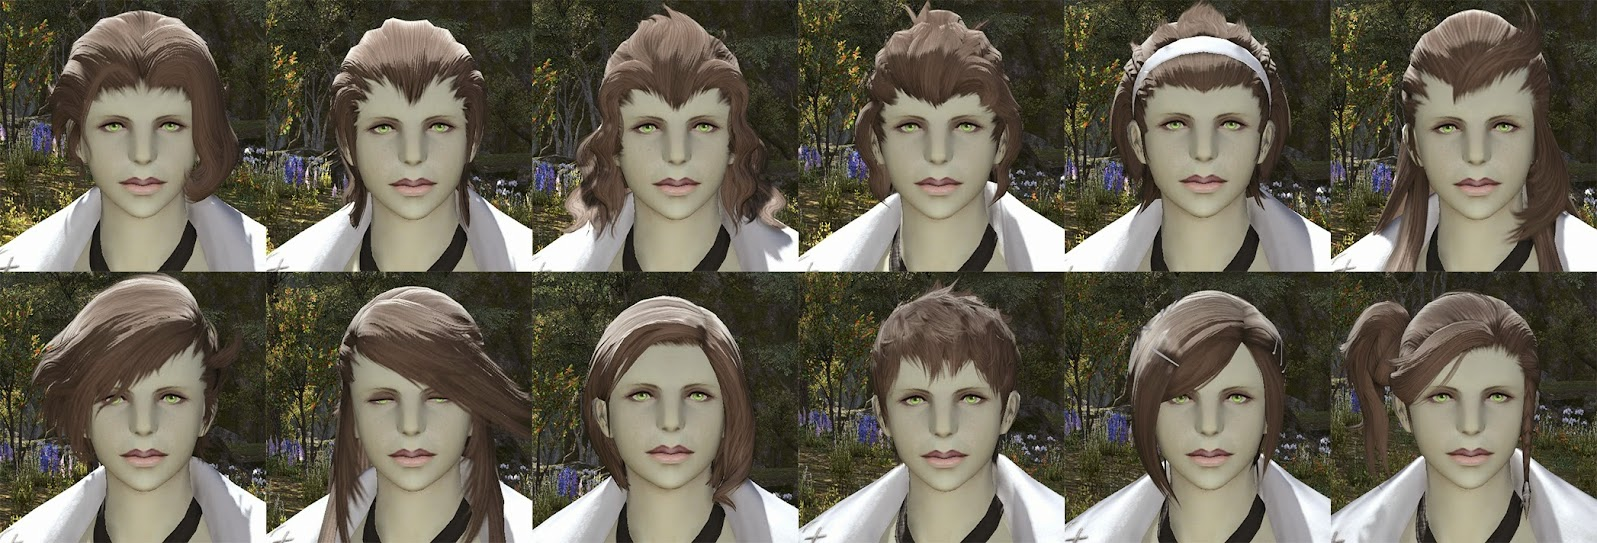 Roegadyn Female Hair